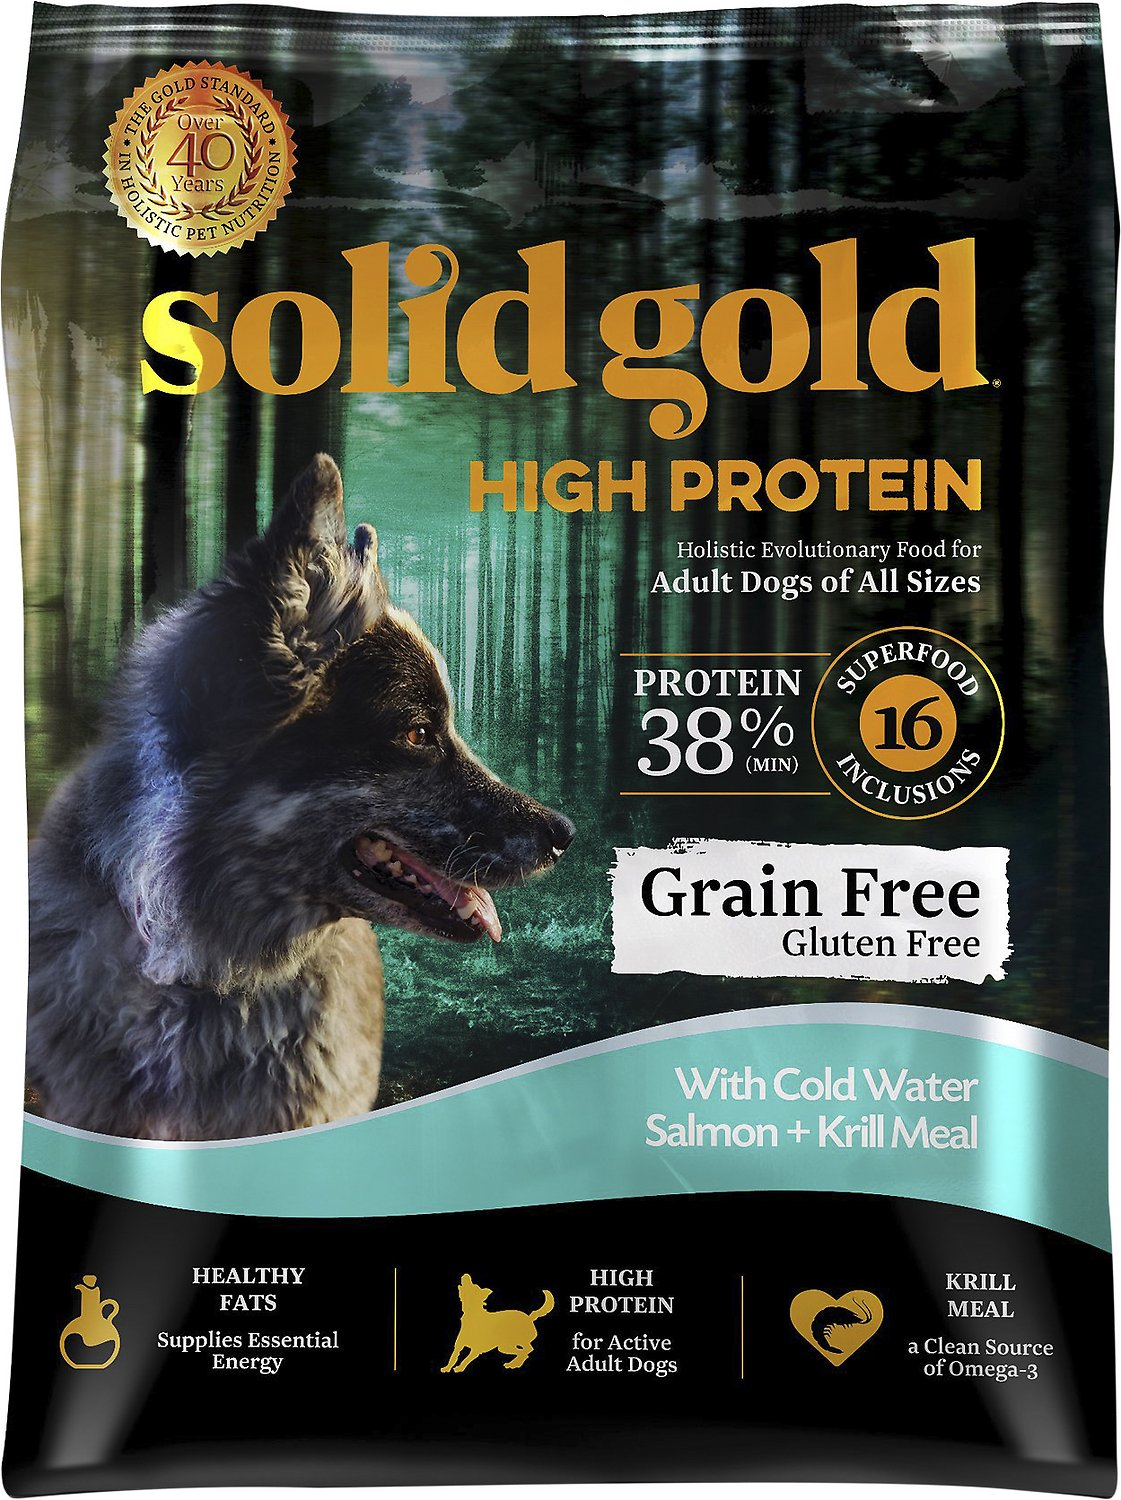 Solid Gold High Protein Grain Free Cold Water Salmon Krill Meal